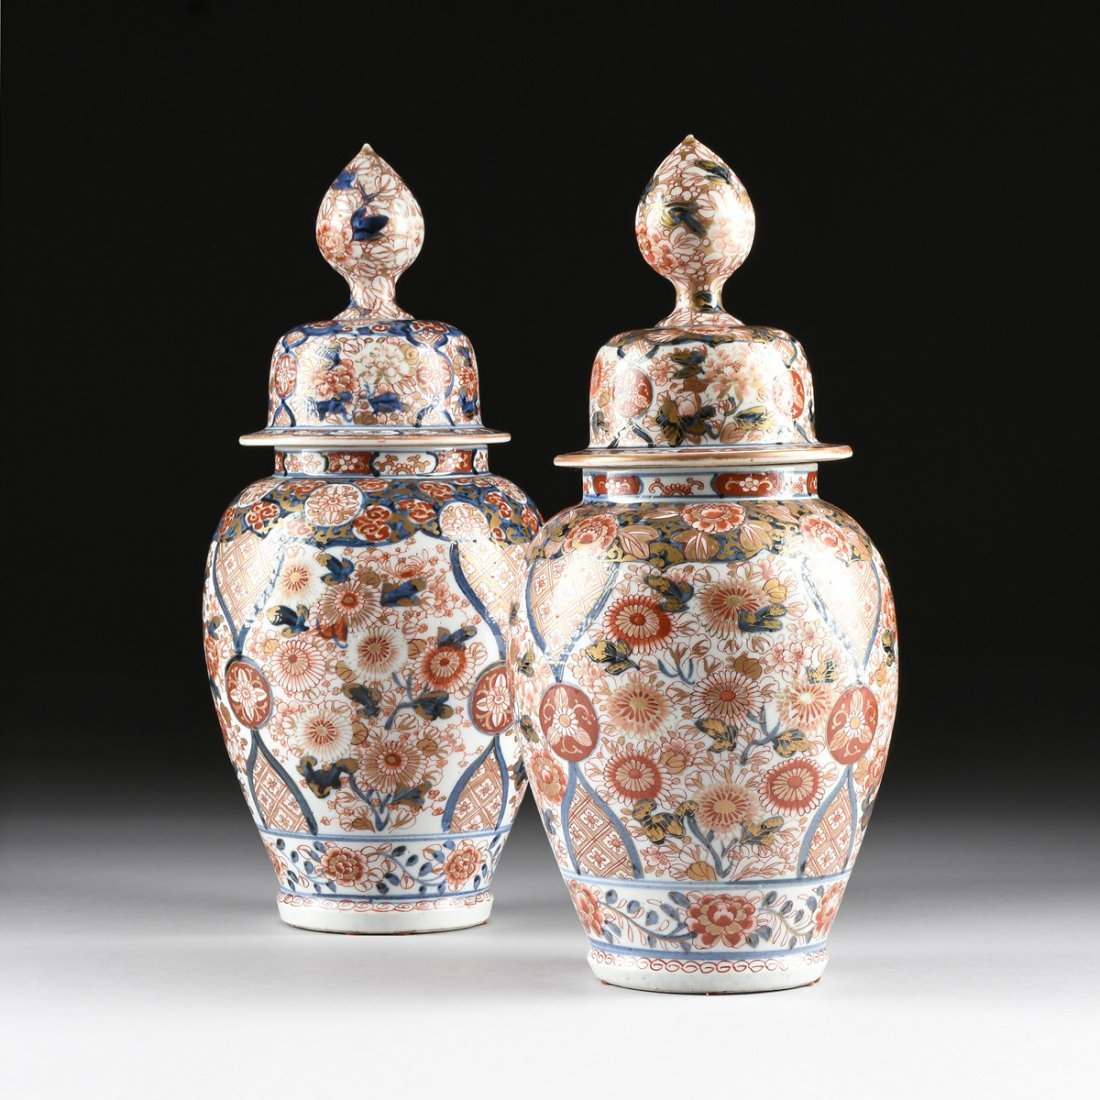 A MATCHED PAIR OF CHINESE IMARI PORCELAIN LIDDED JARS,